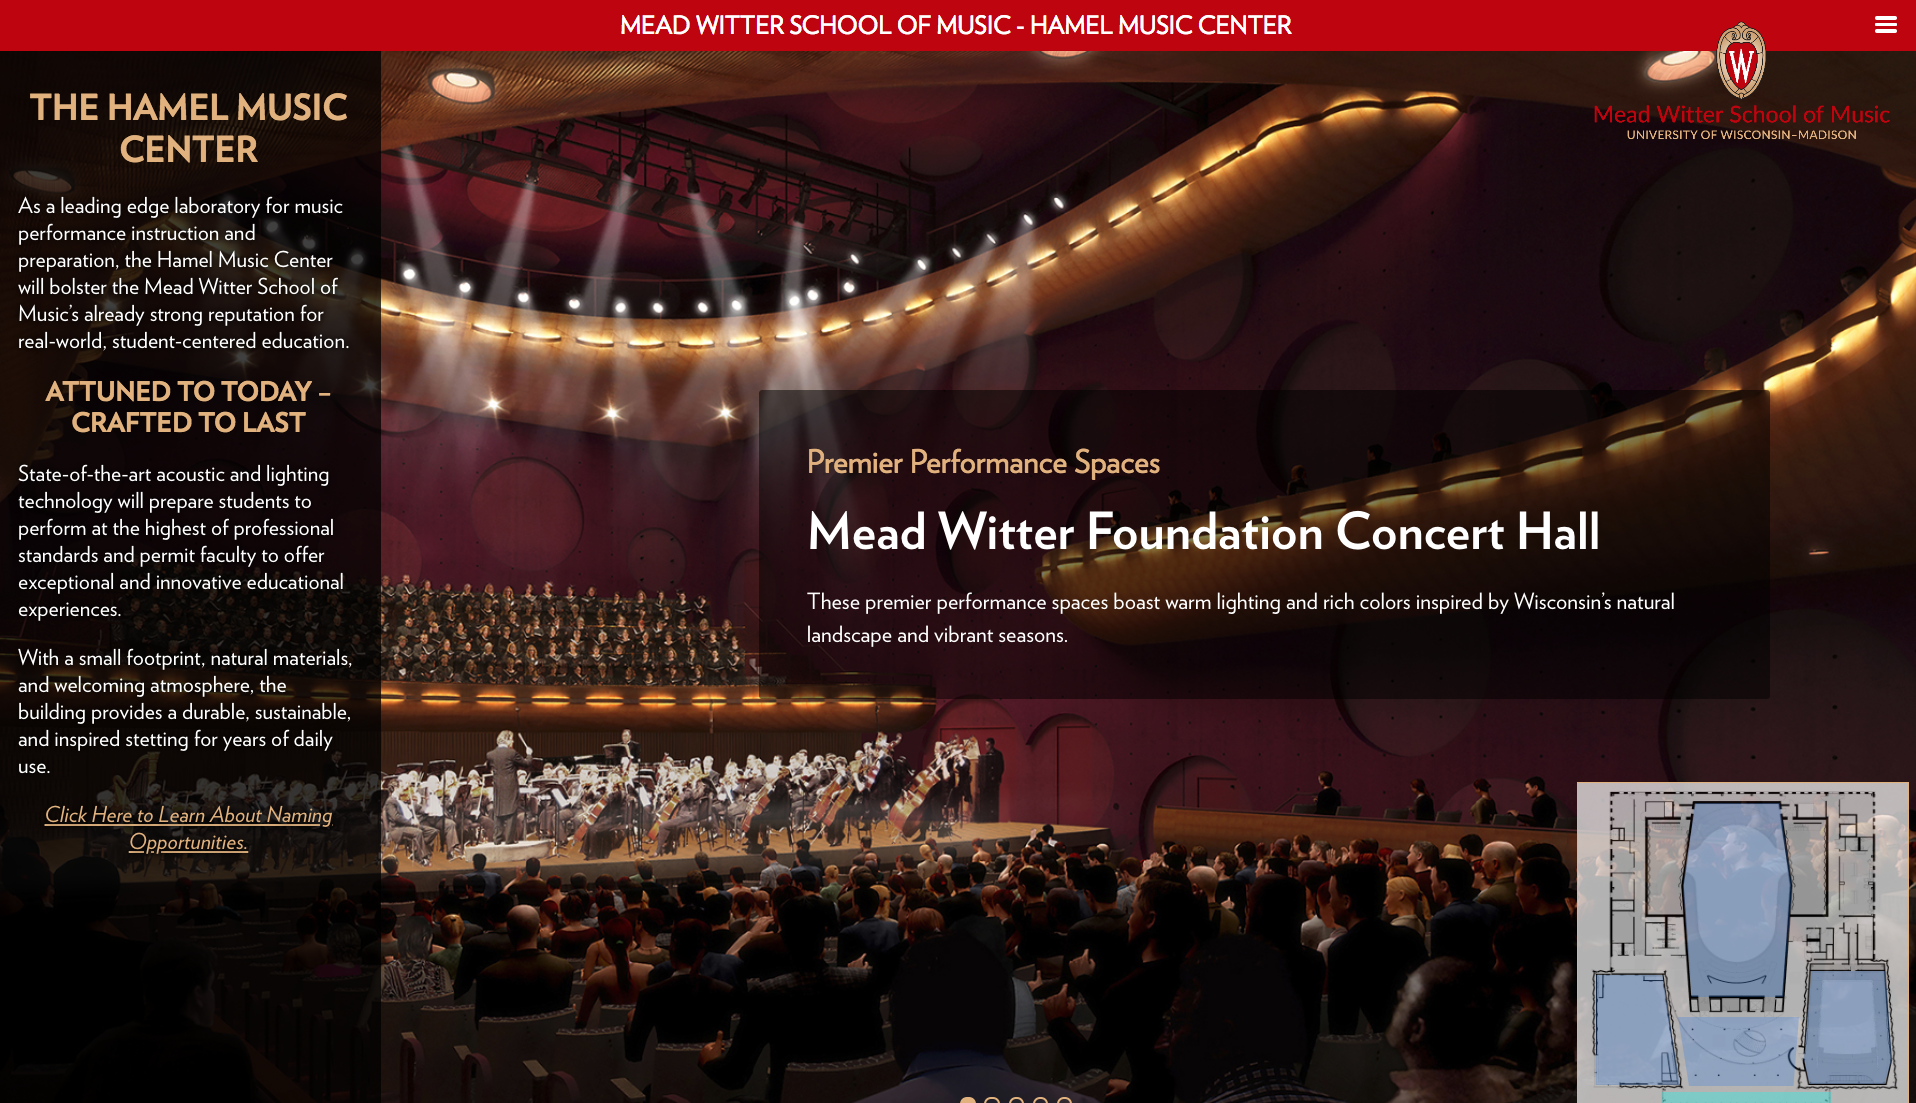 Hamel Music Center Website